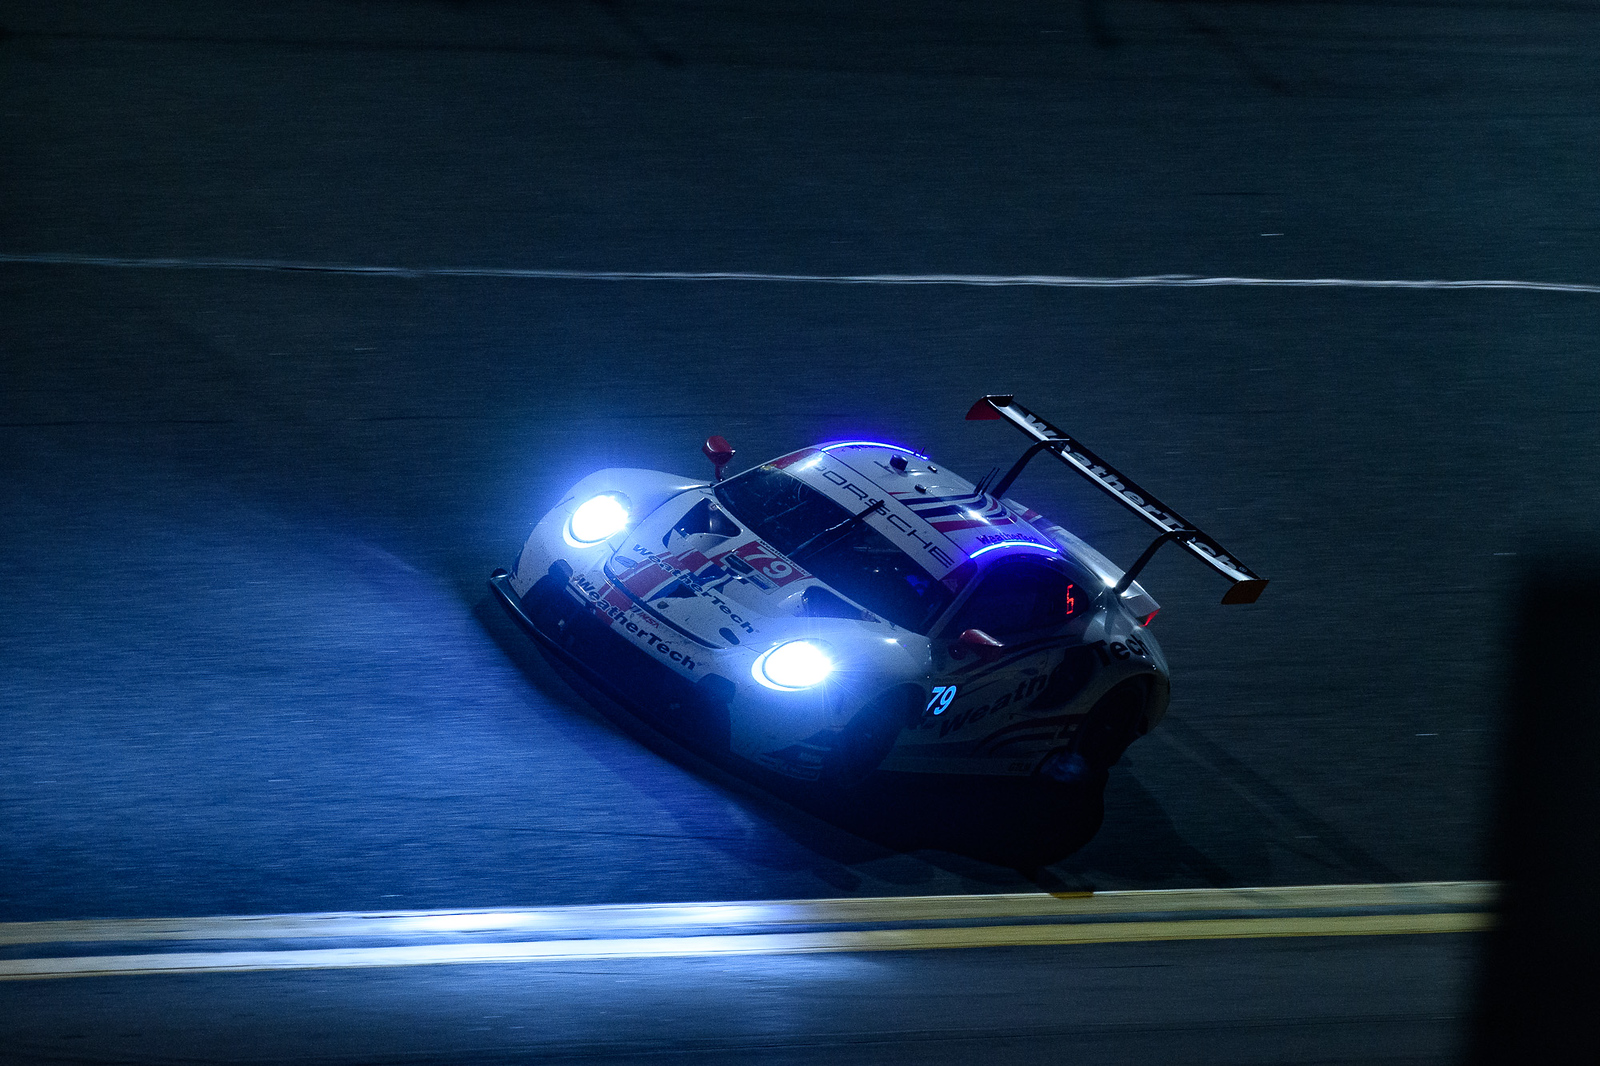 Porsche on track at night_